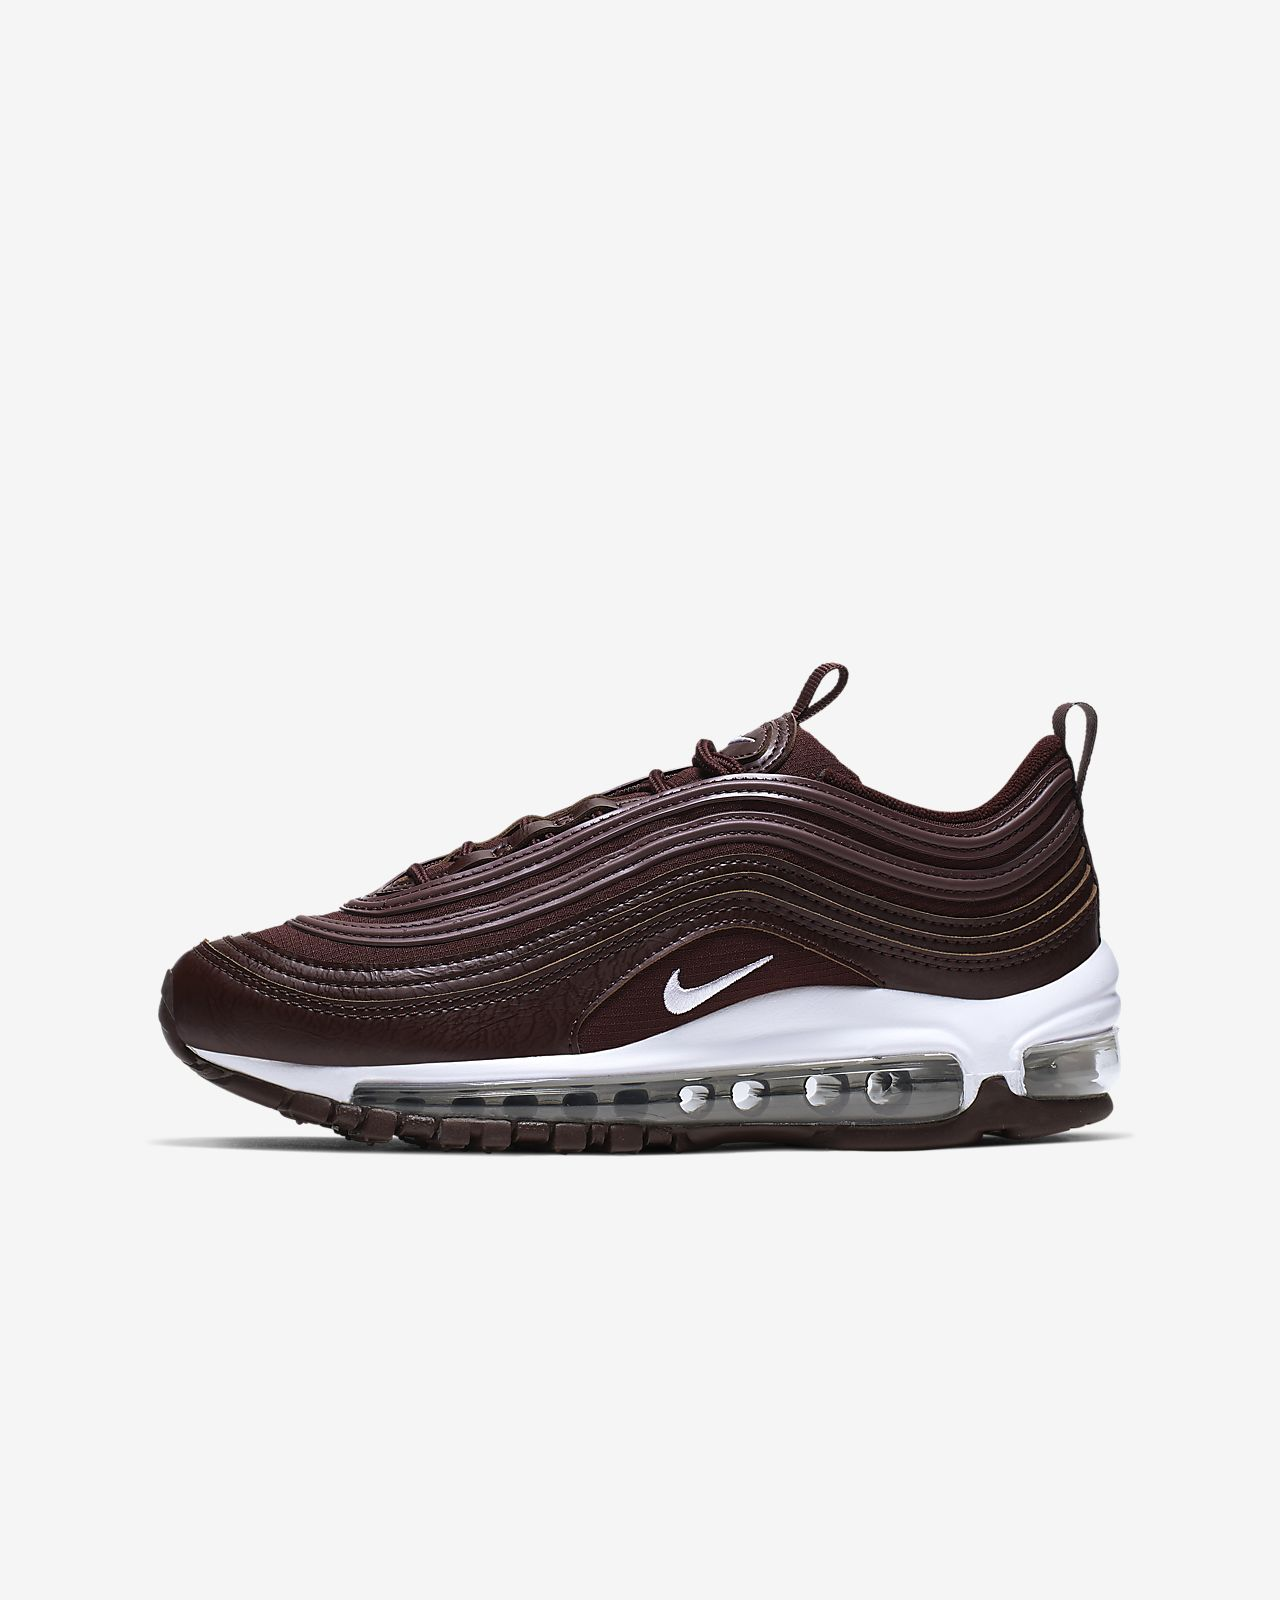 Nike Air Max 97 PE Kinderschoen